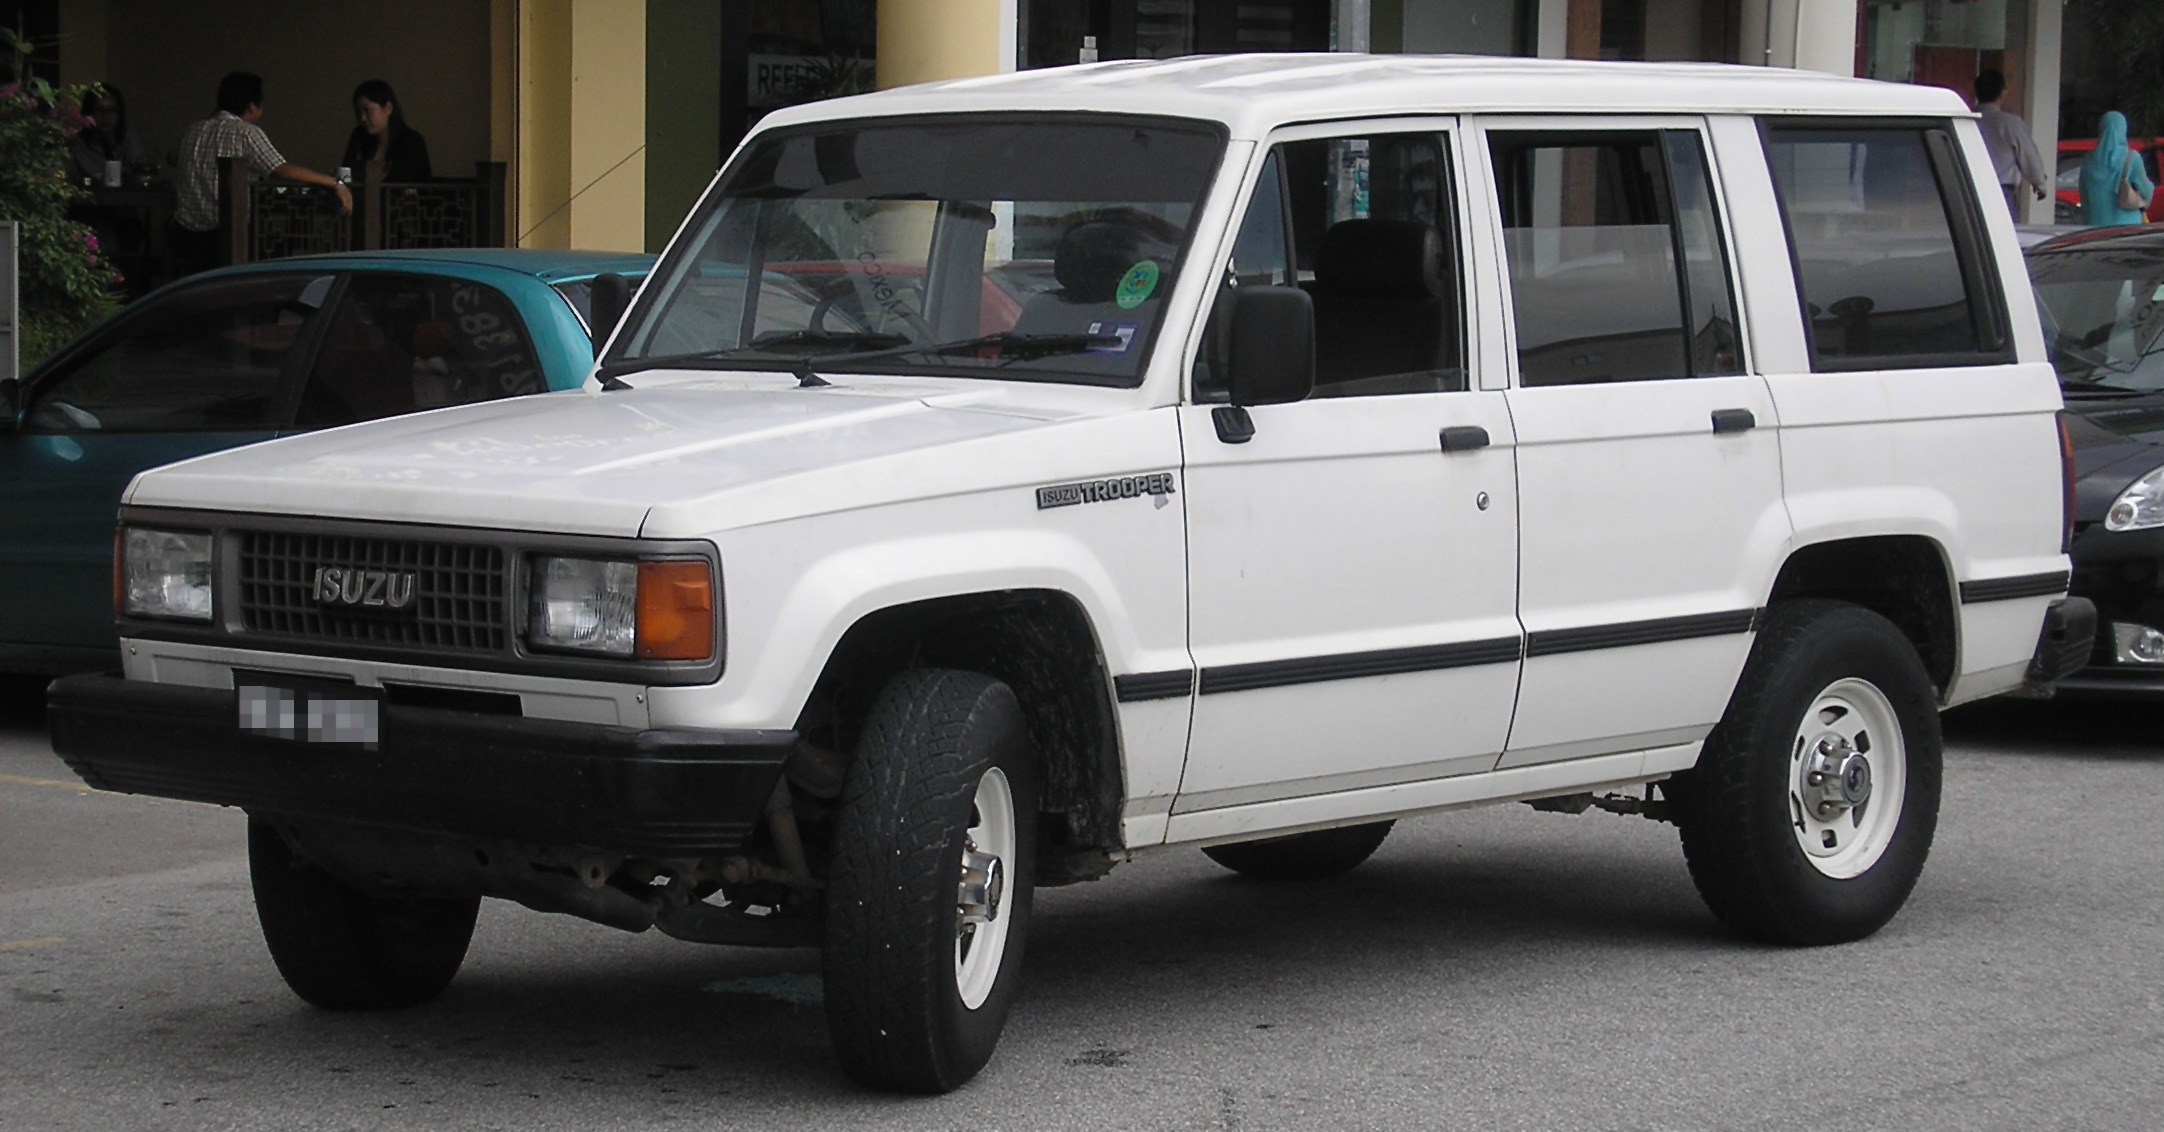 file isuzu trooper first generation first facelift front. Black Bedroom Furniture Sets. Home Design Ideas